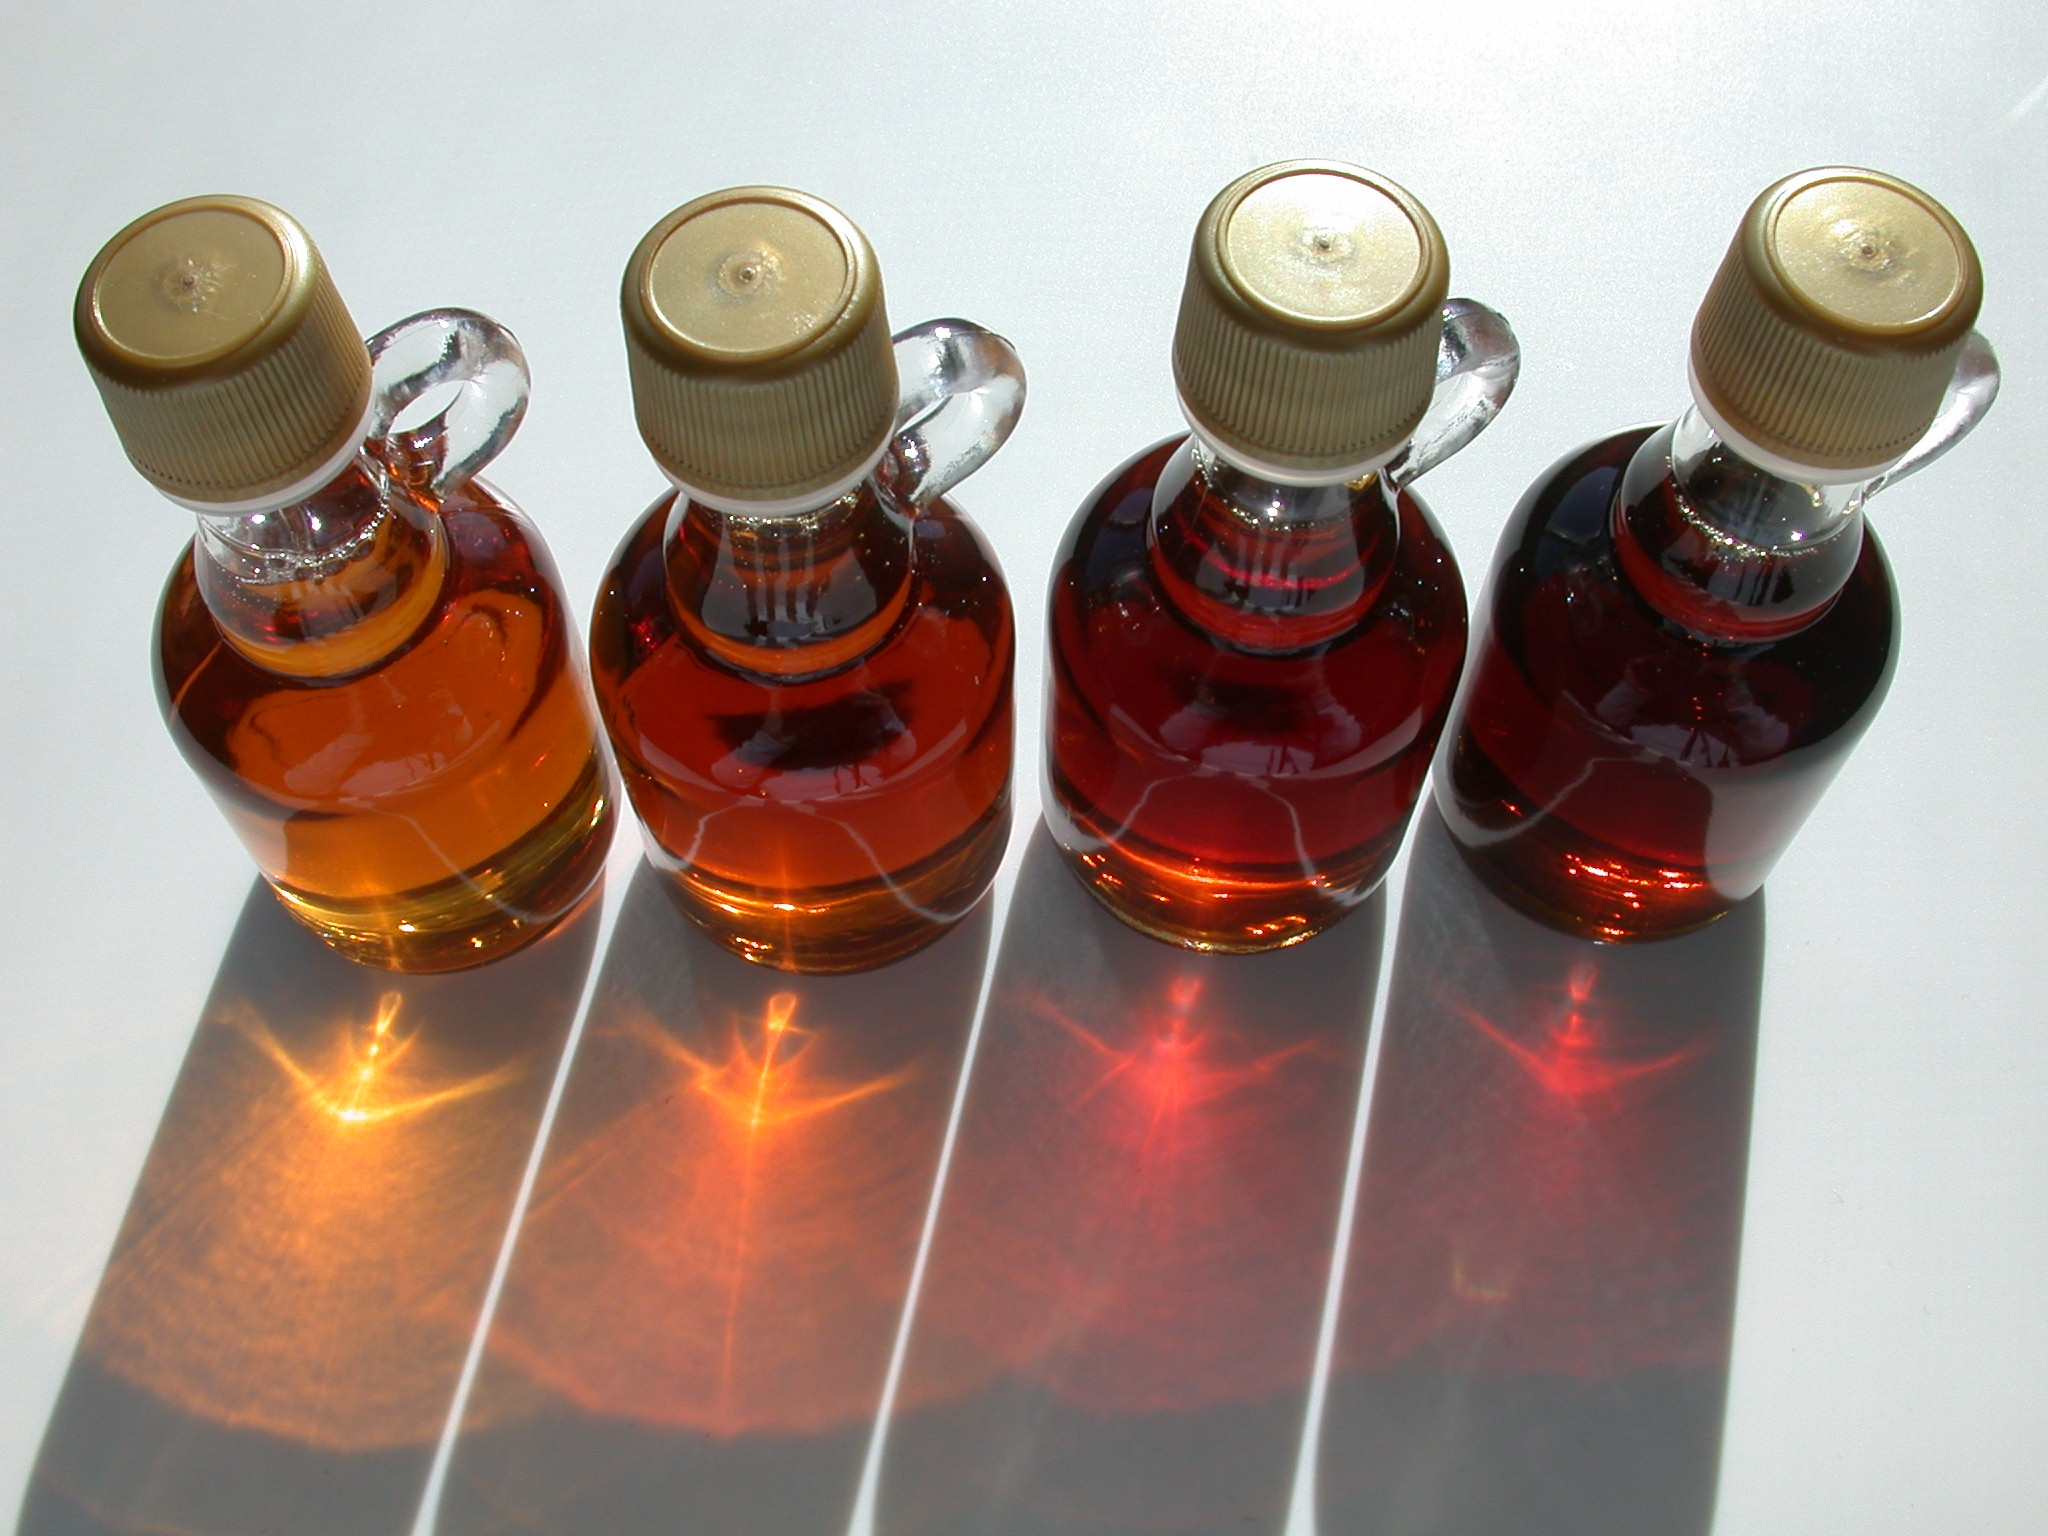 Four bottles of maple syrup.